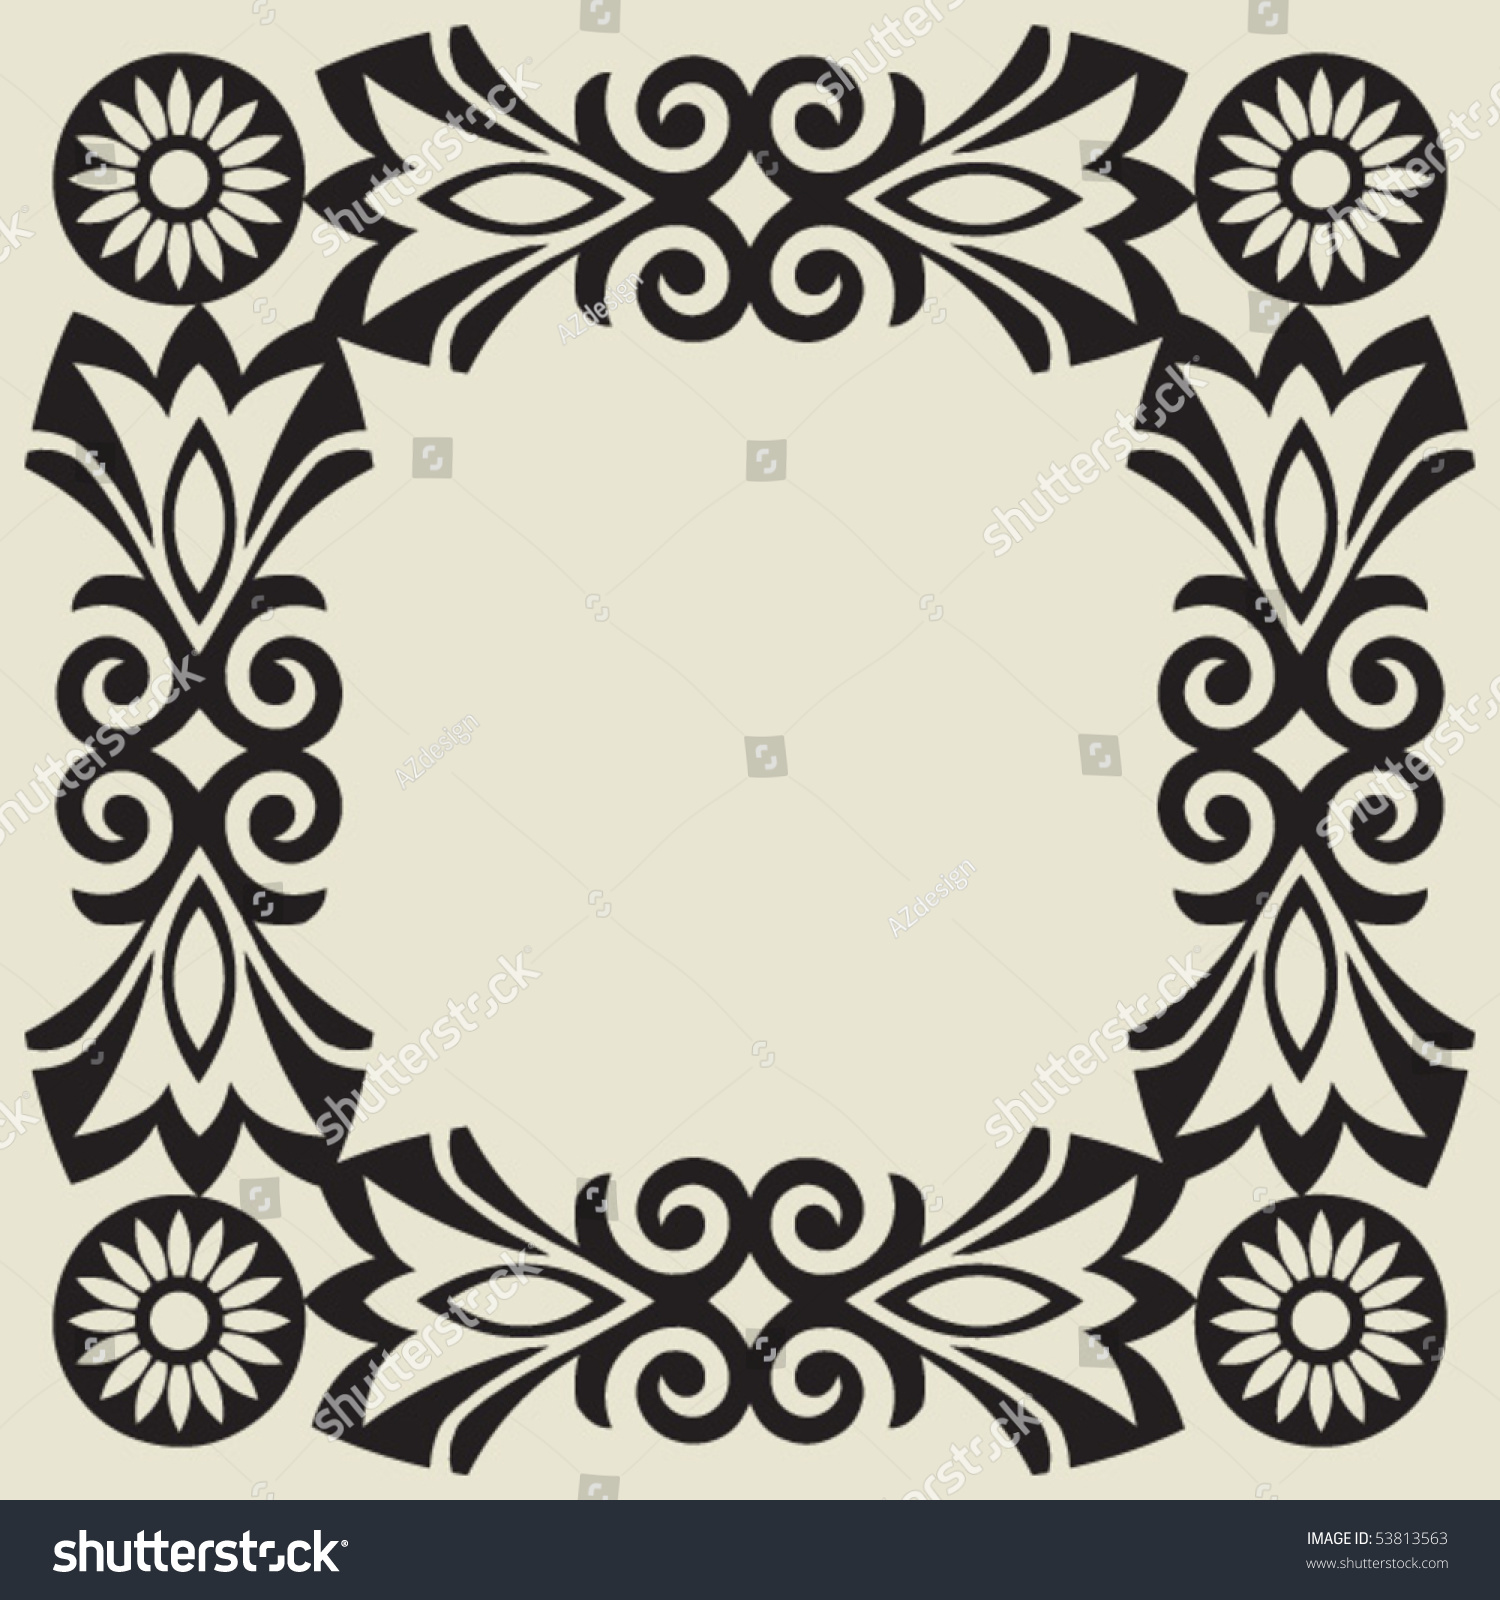 Baroque floral decoration vector design elements for Baroque design elements